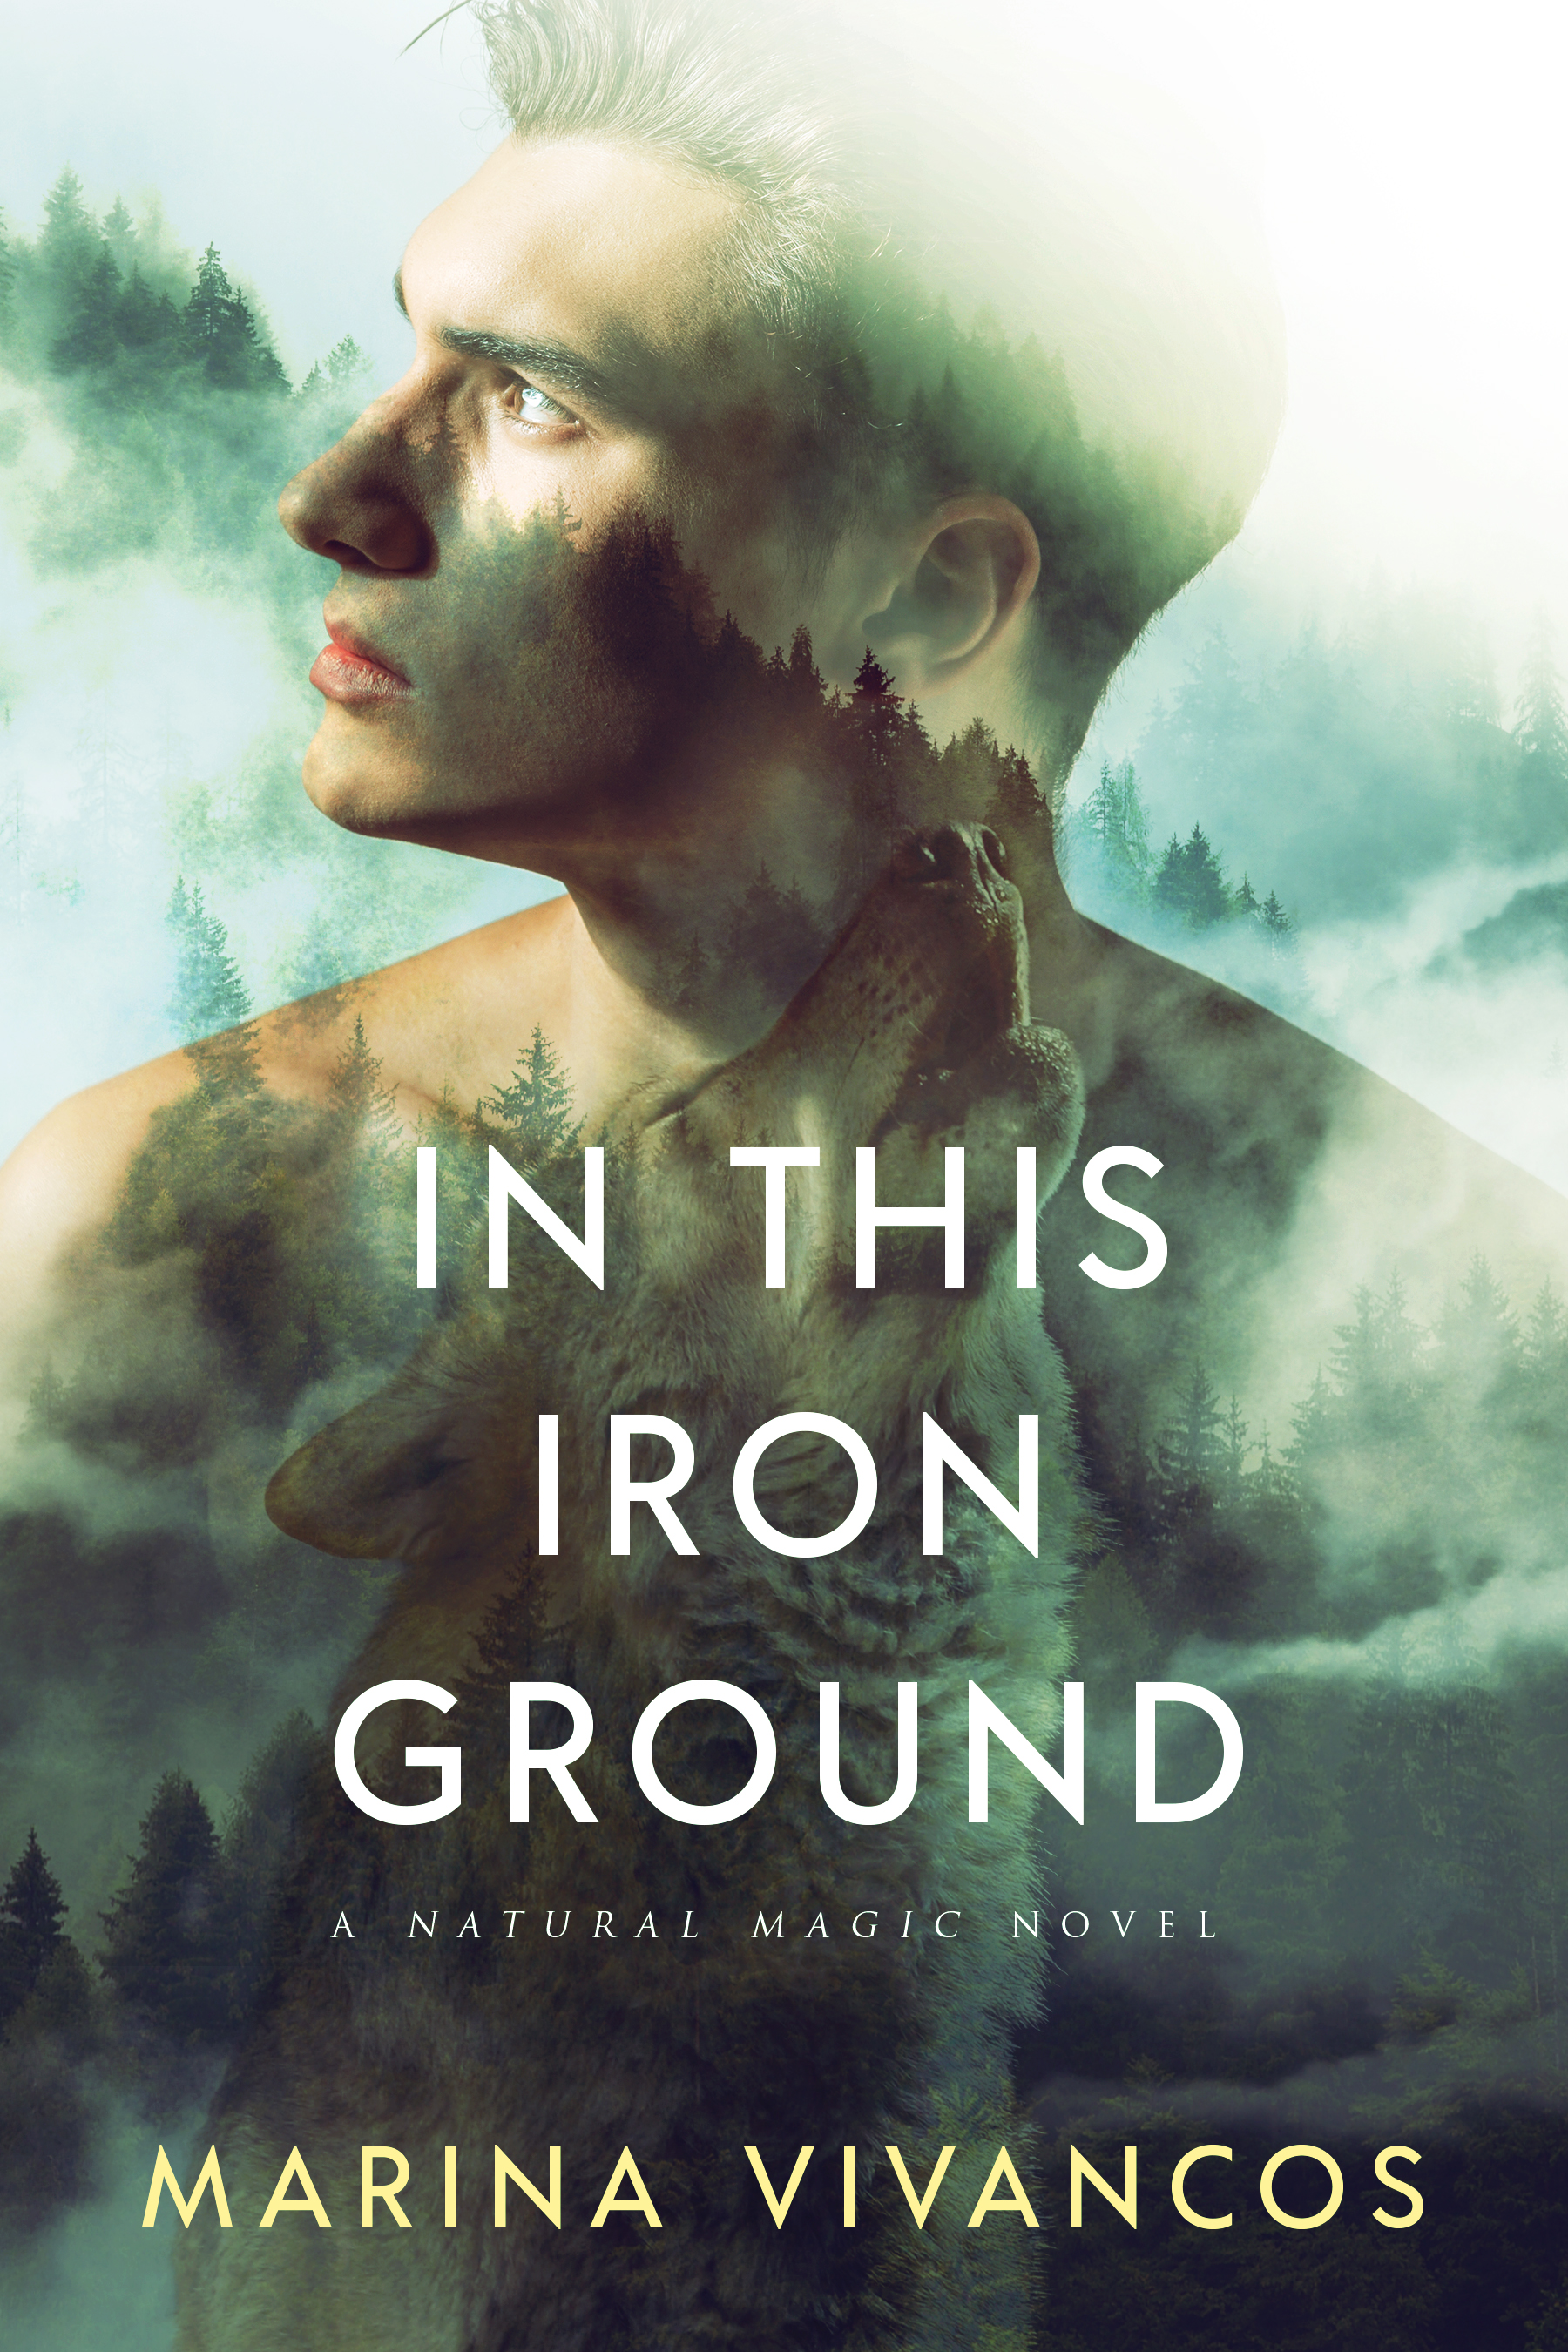 Review: In This Iron Ground by Marina Vivancos